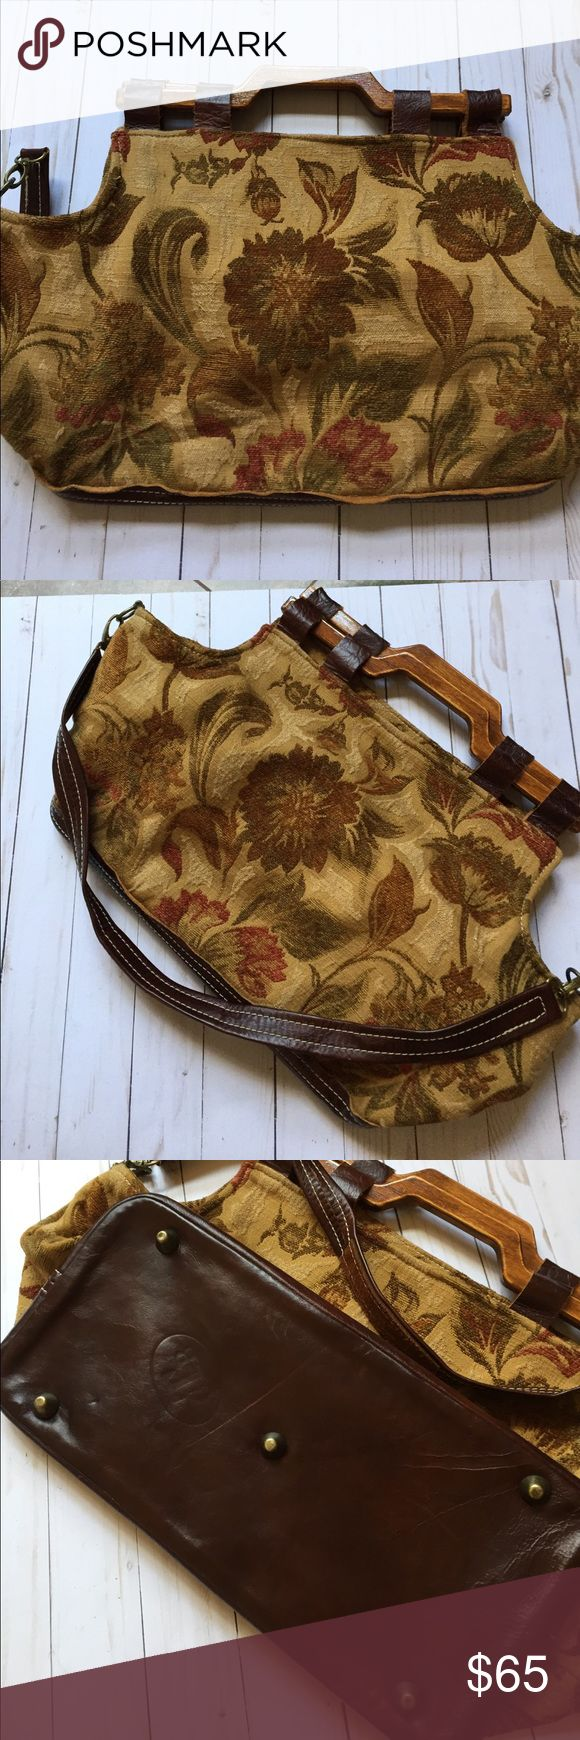 Carpet cross body bag Un carried, wood bottom many pockets inside. Shoulder strap comes off, wood handles. Well put together. texas carpet baggers Bags Crossbody Bags